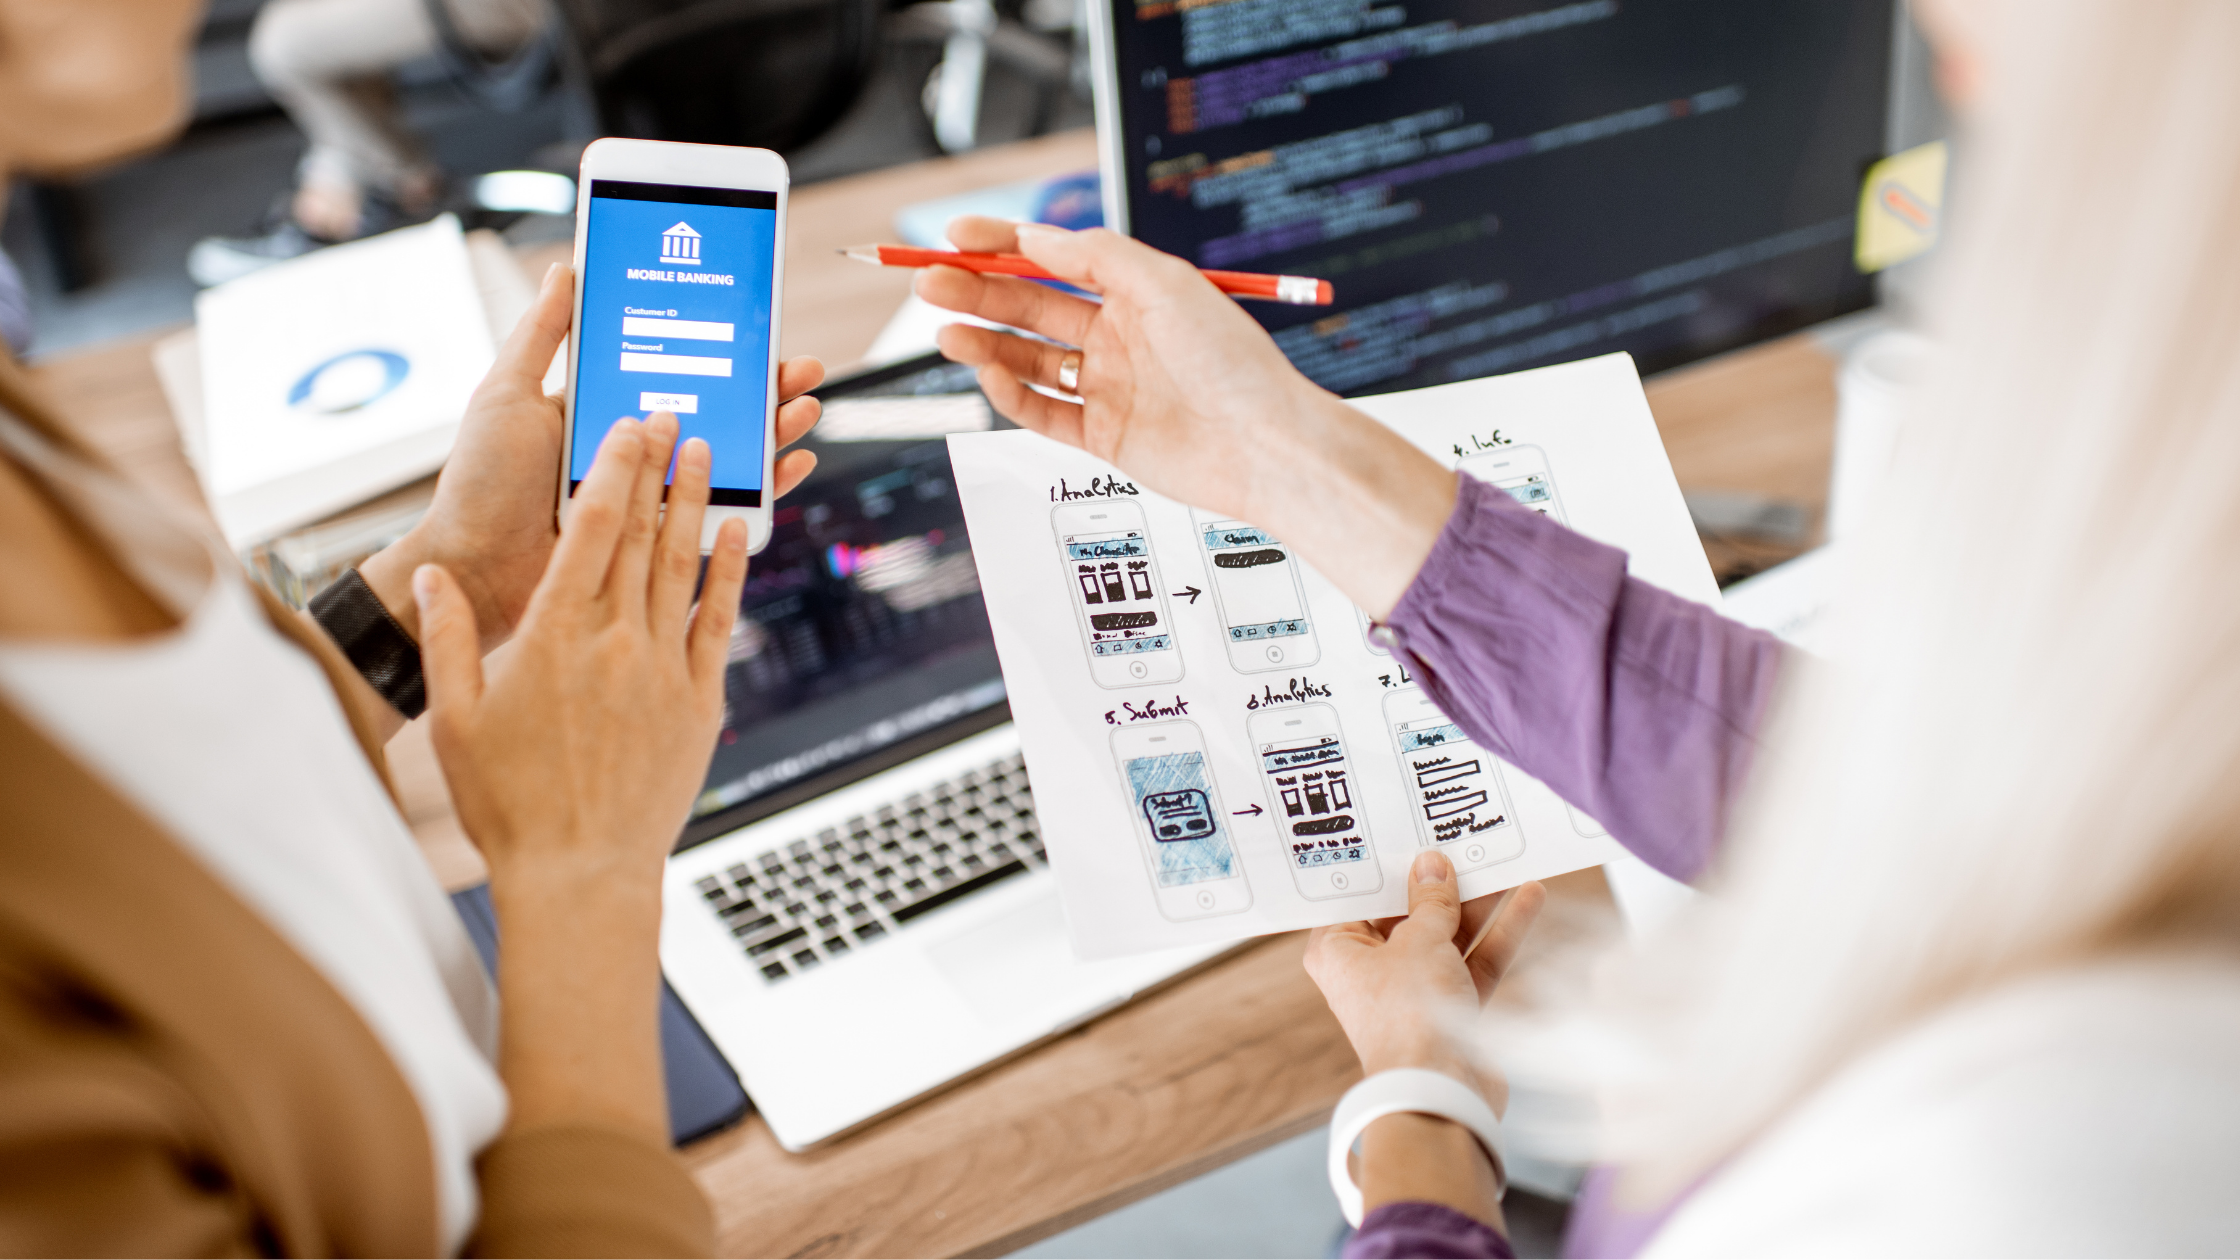 The Mobile Application Development Process Every Successful App Uses